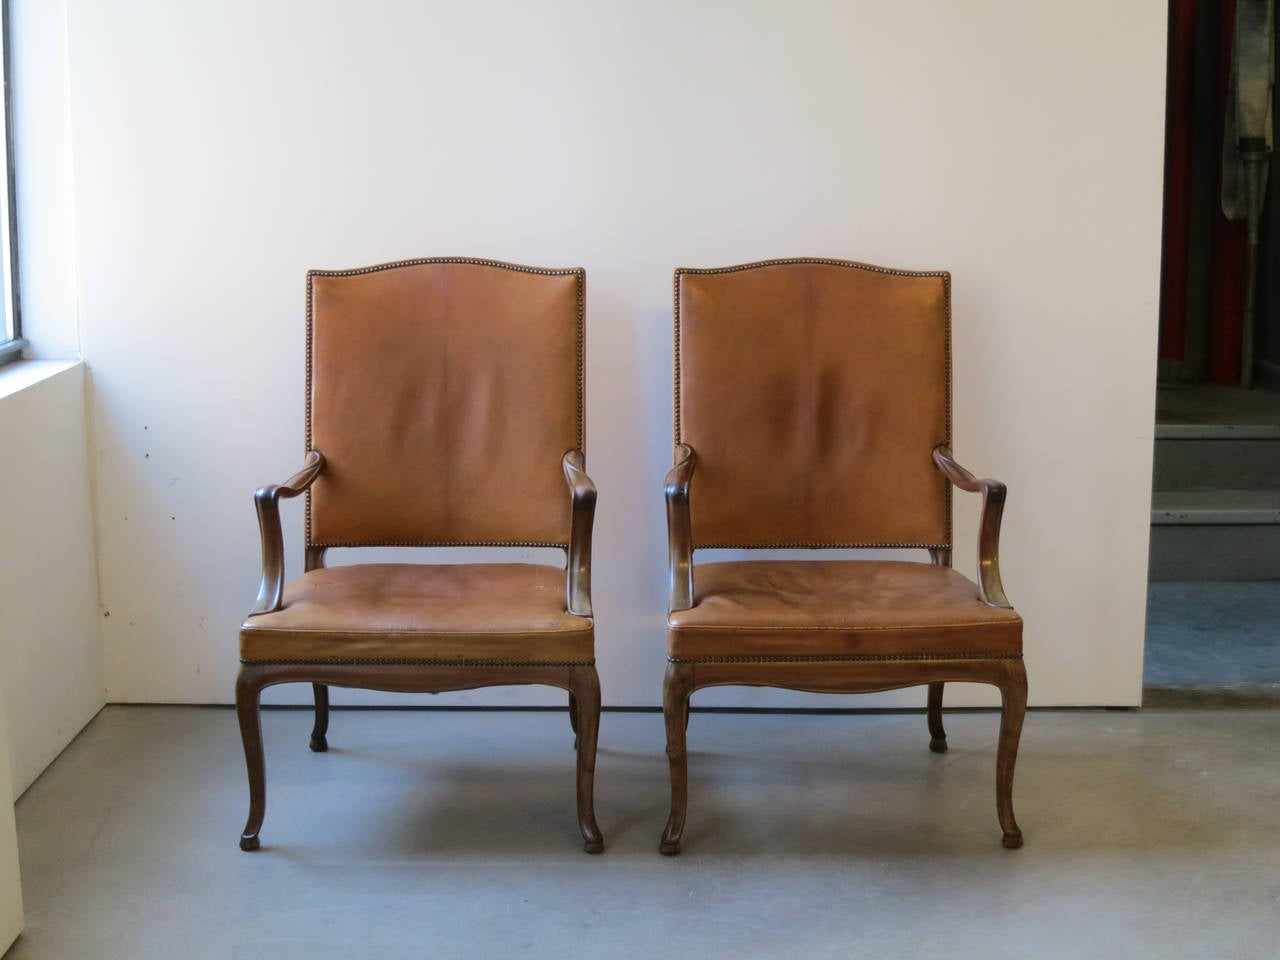 Frits Henningsen Four Large 1930s Armchairs in Danish Rococo Style 8